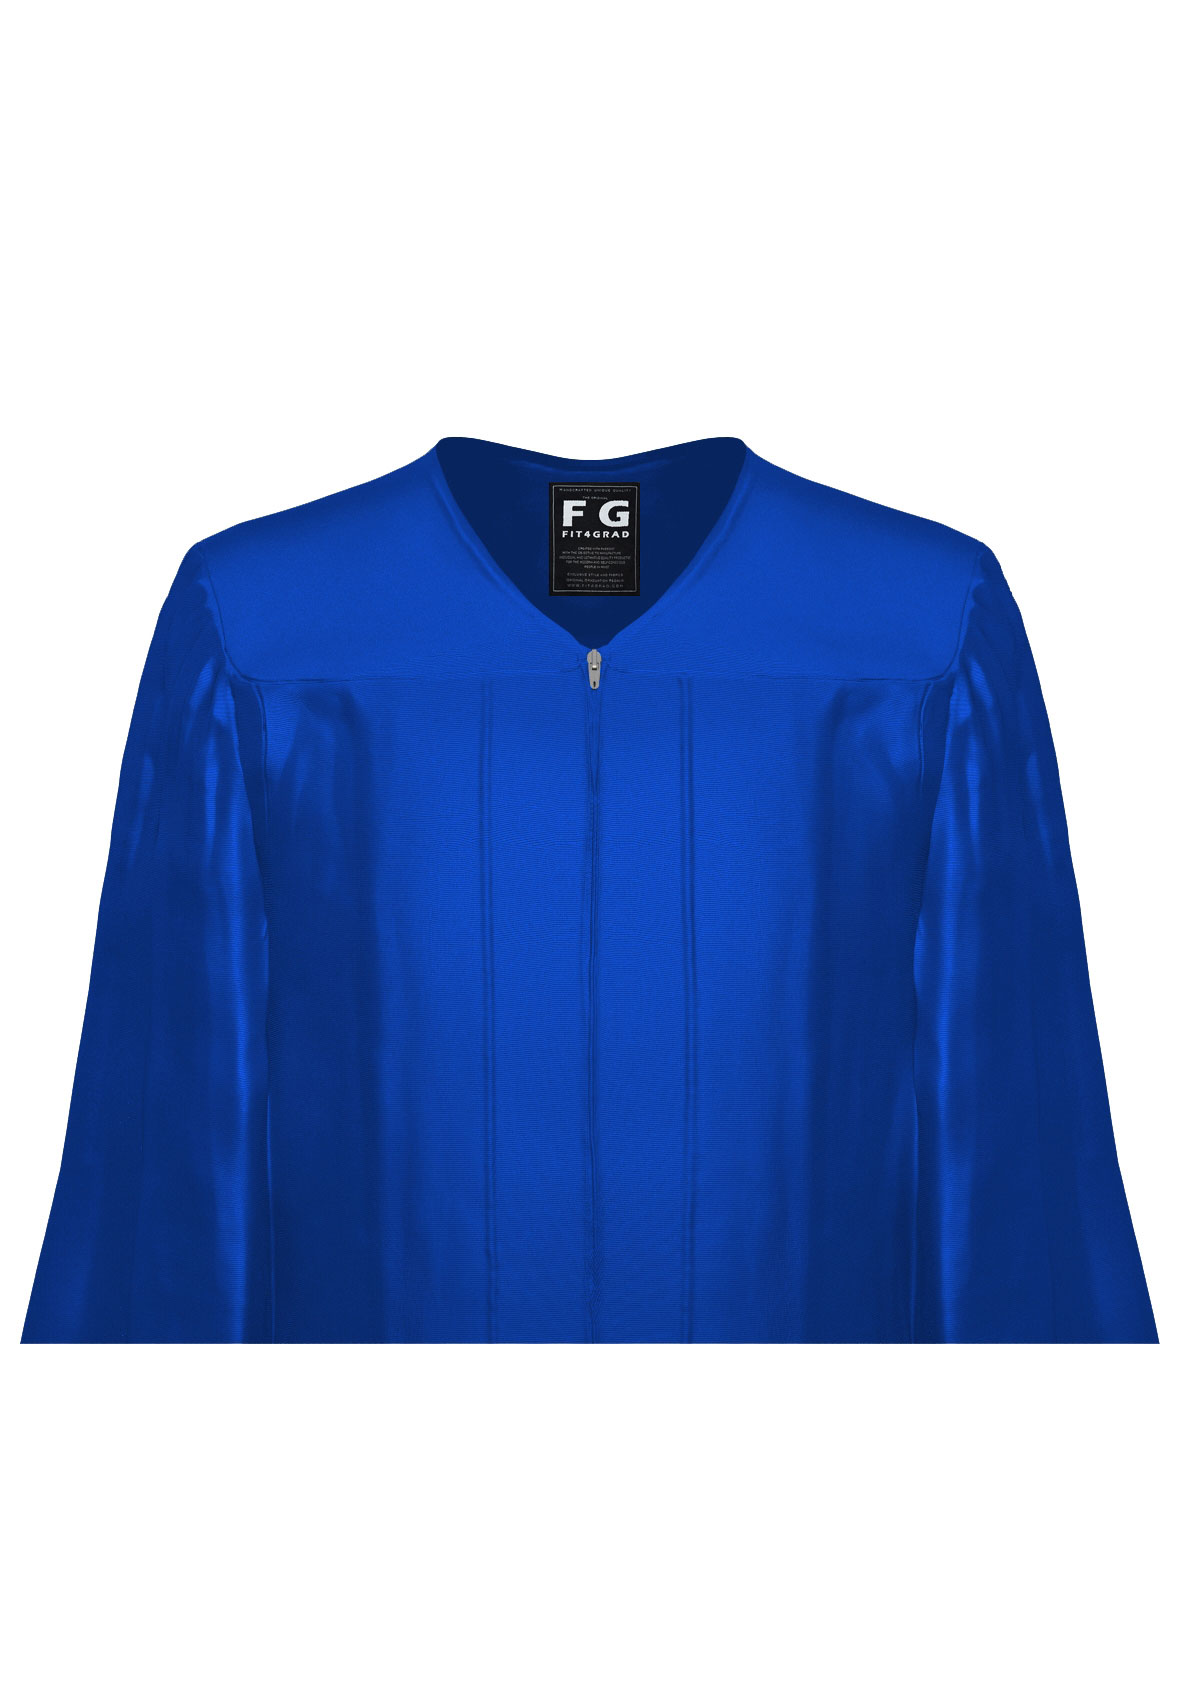 SHINY ROYAL BLUE CAP AND GOWN-rs4251465611089